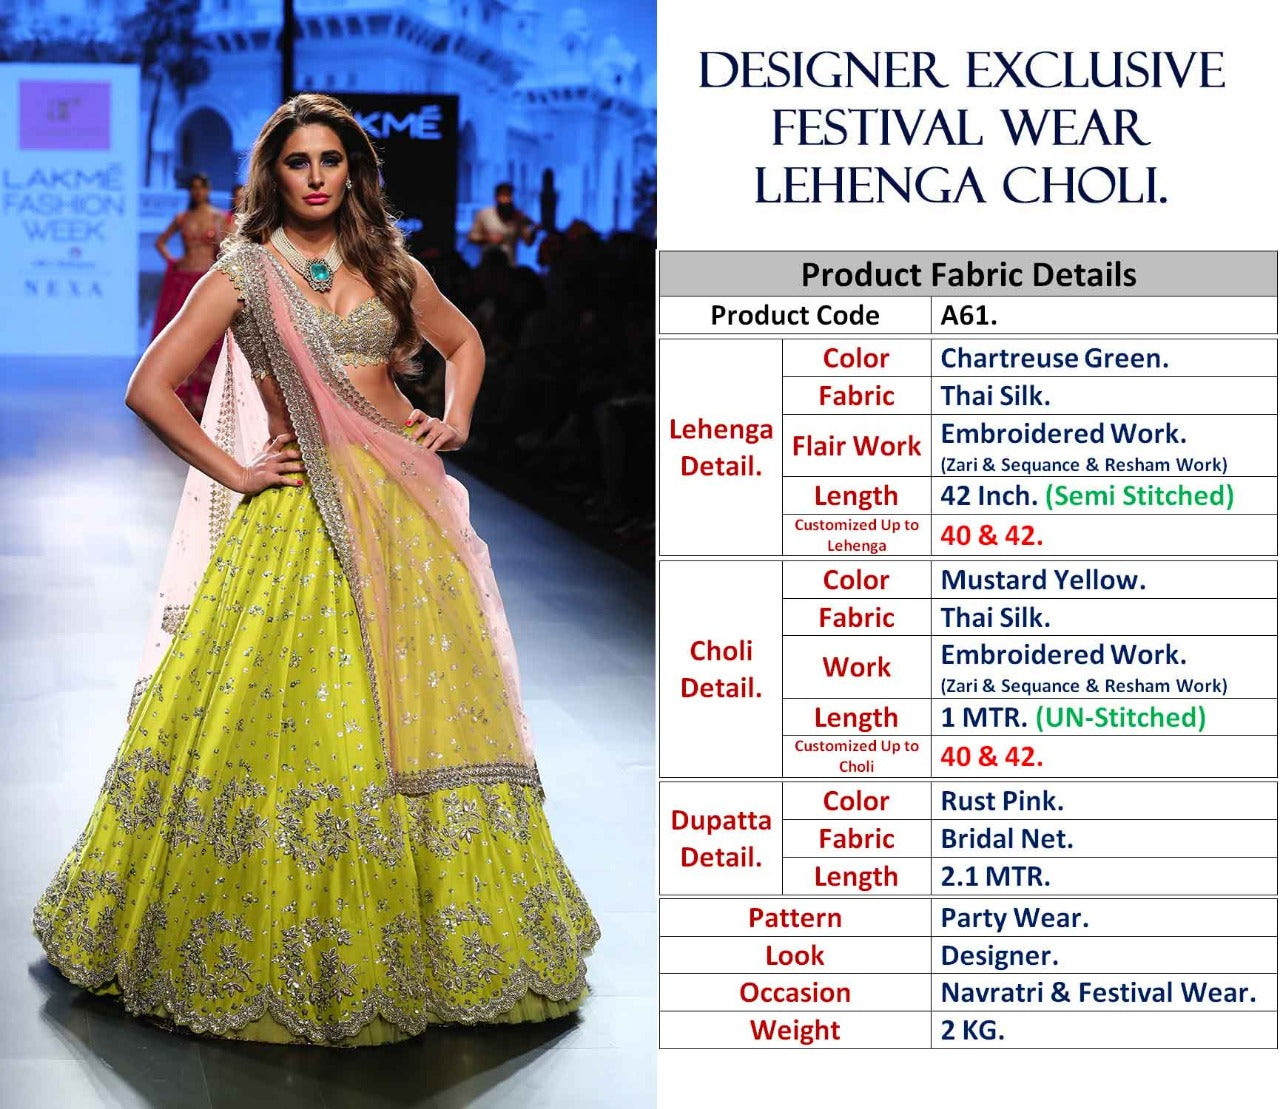 Chartreuse Green Silk New Wedding Wear Designer Choli Designs For Lehengas